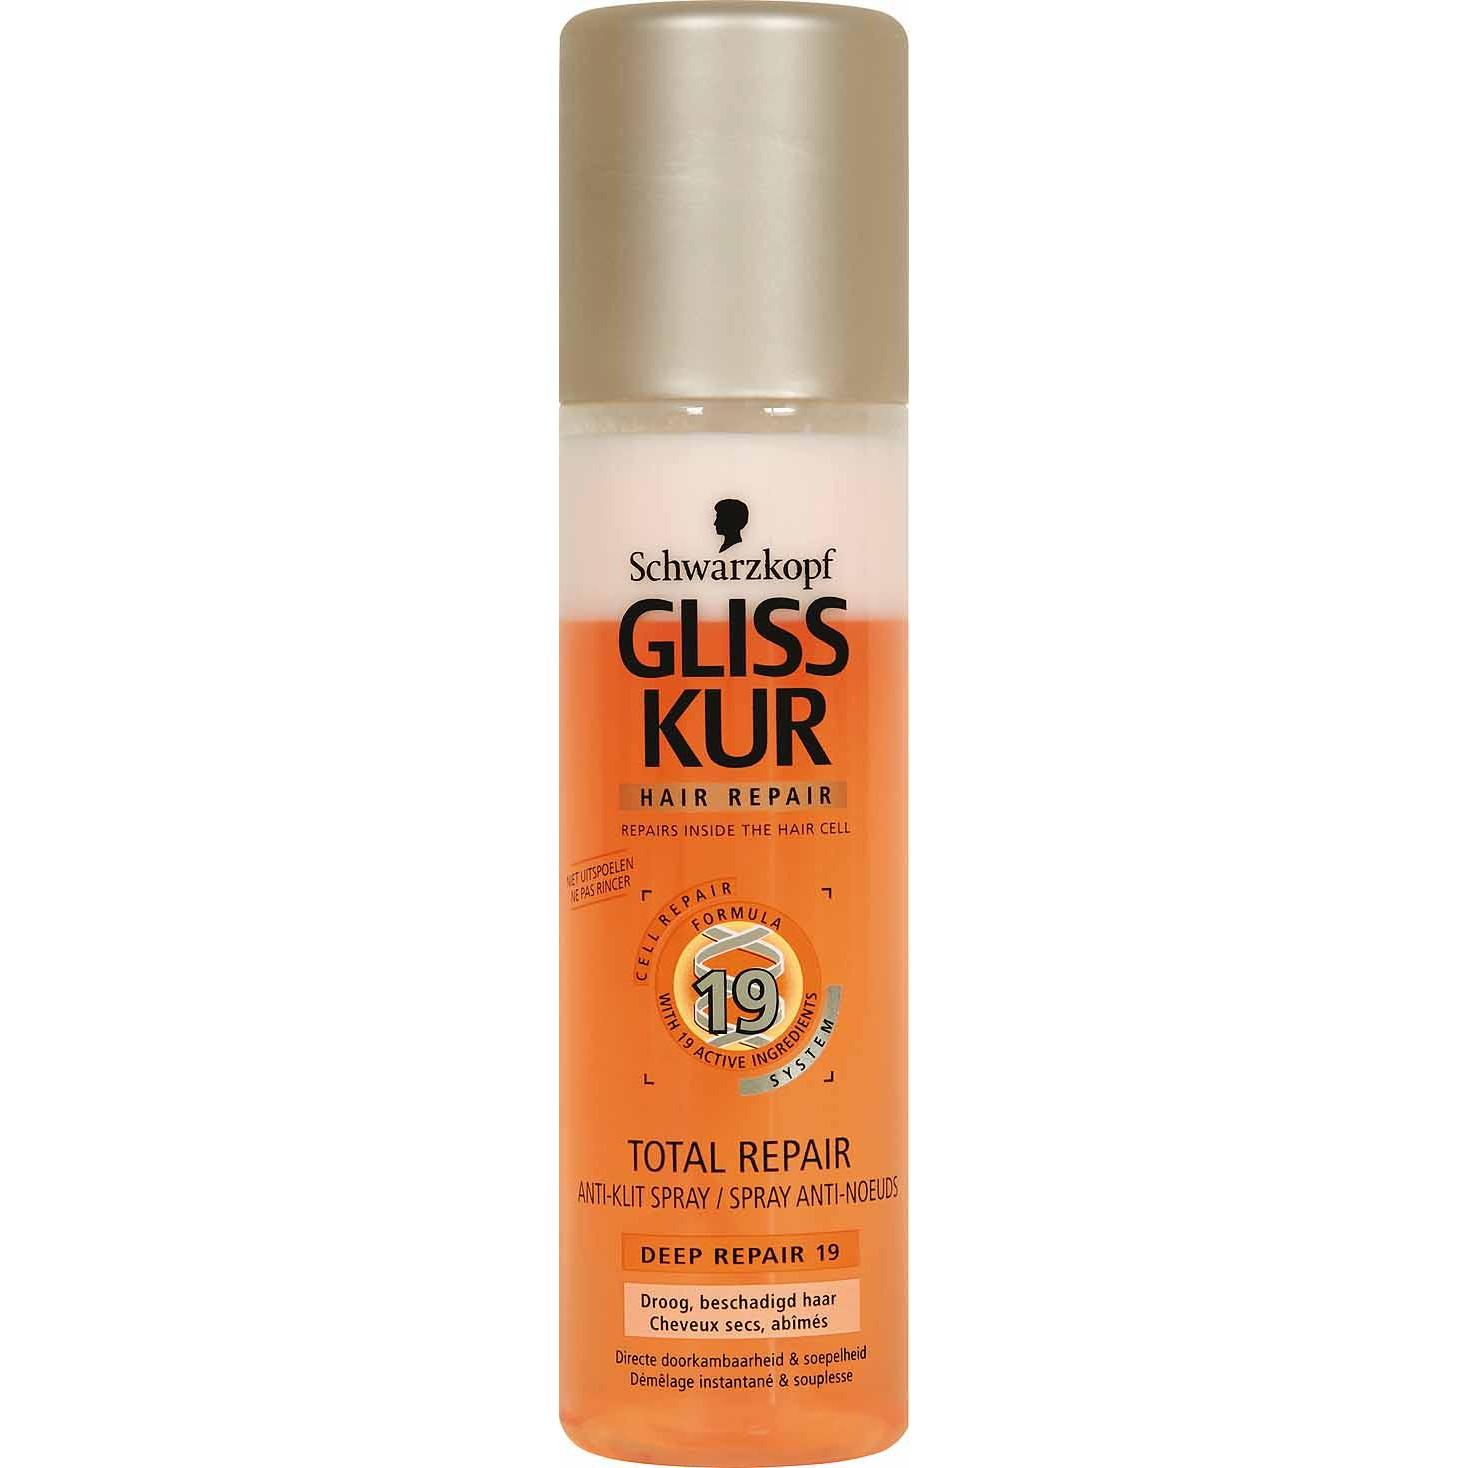 Gliss Kur Hair Repair - Marrakesh Oil & Coconut Spray 200 ml